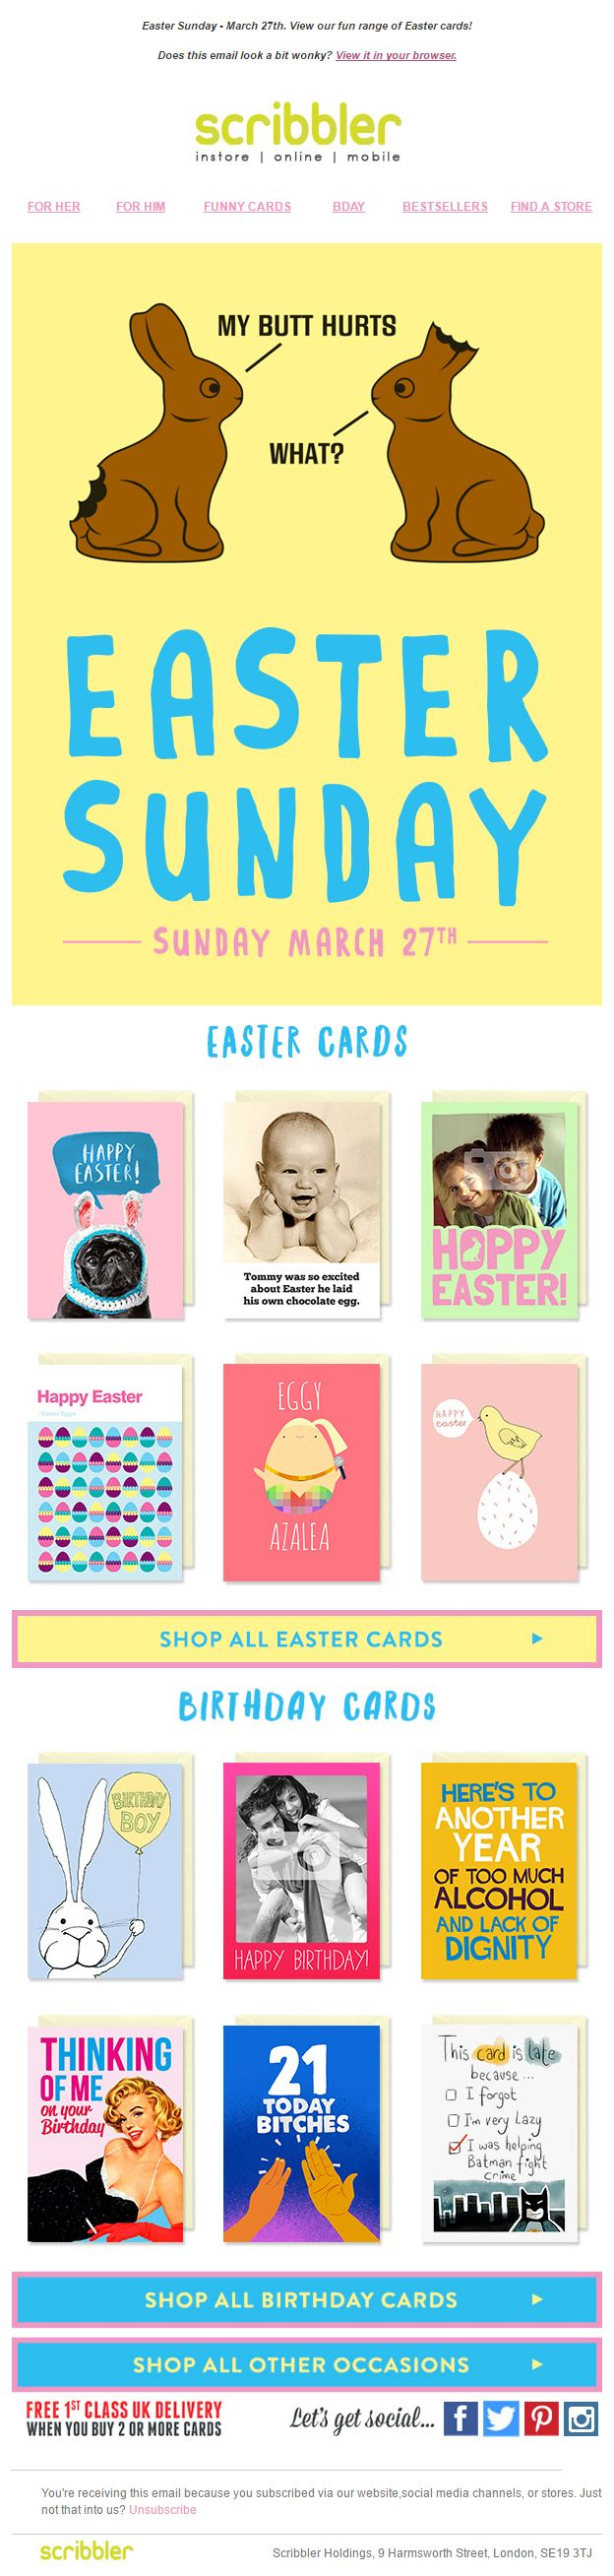 94 best easter emails images on pinterest email marketing scribbler easter recommendations email emailmarketing email marketing product recommendations design negle Choice Image